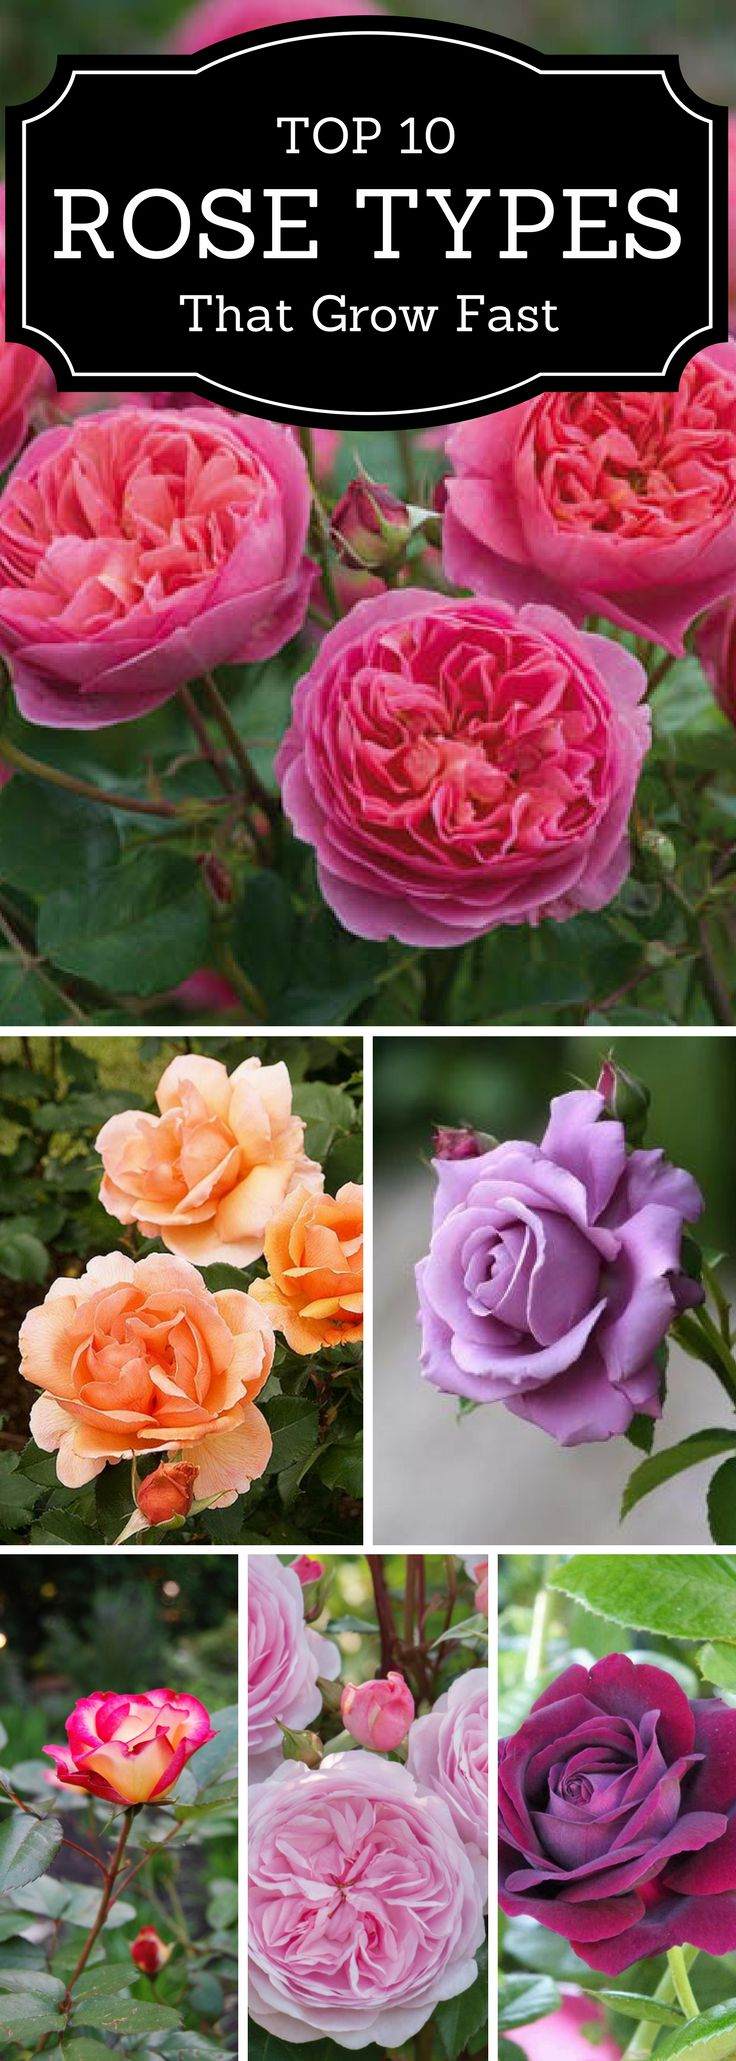 #flowers #the top 10 types of roses that grow fast and will look good in your yard. #gardening tips.